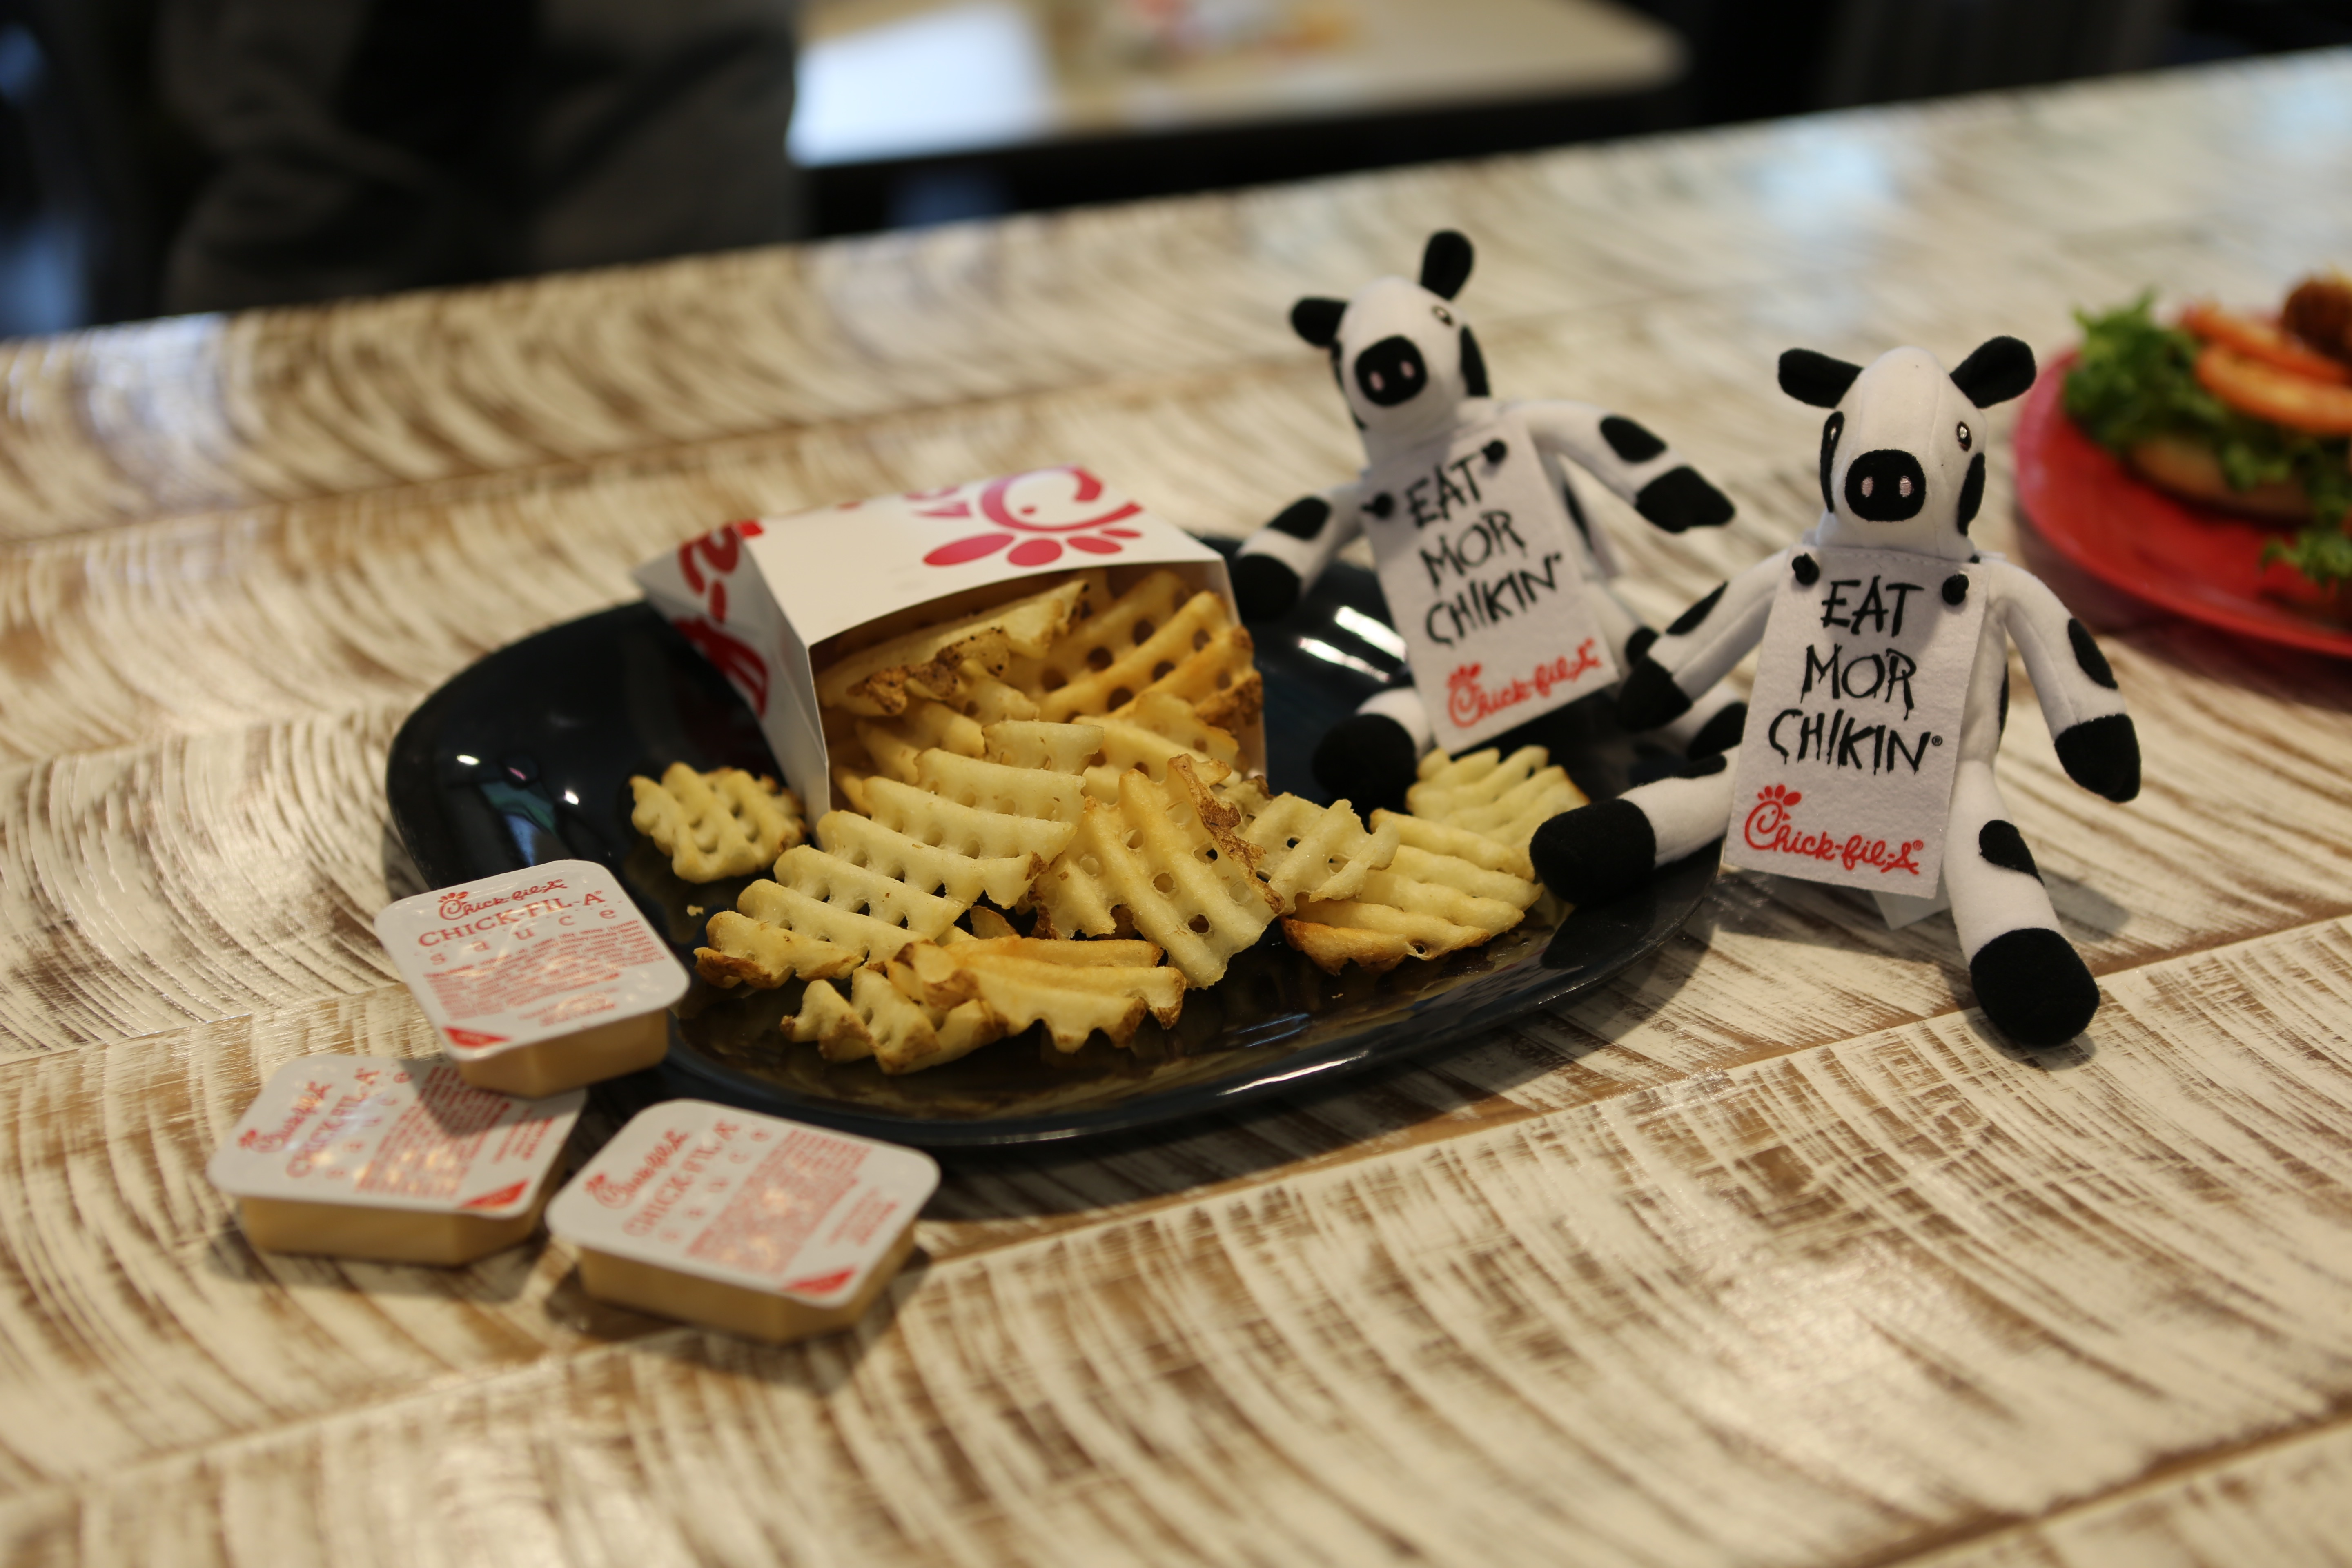 More waffle fries and dips